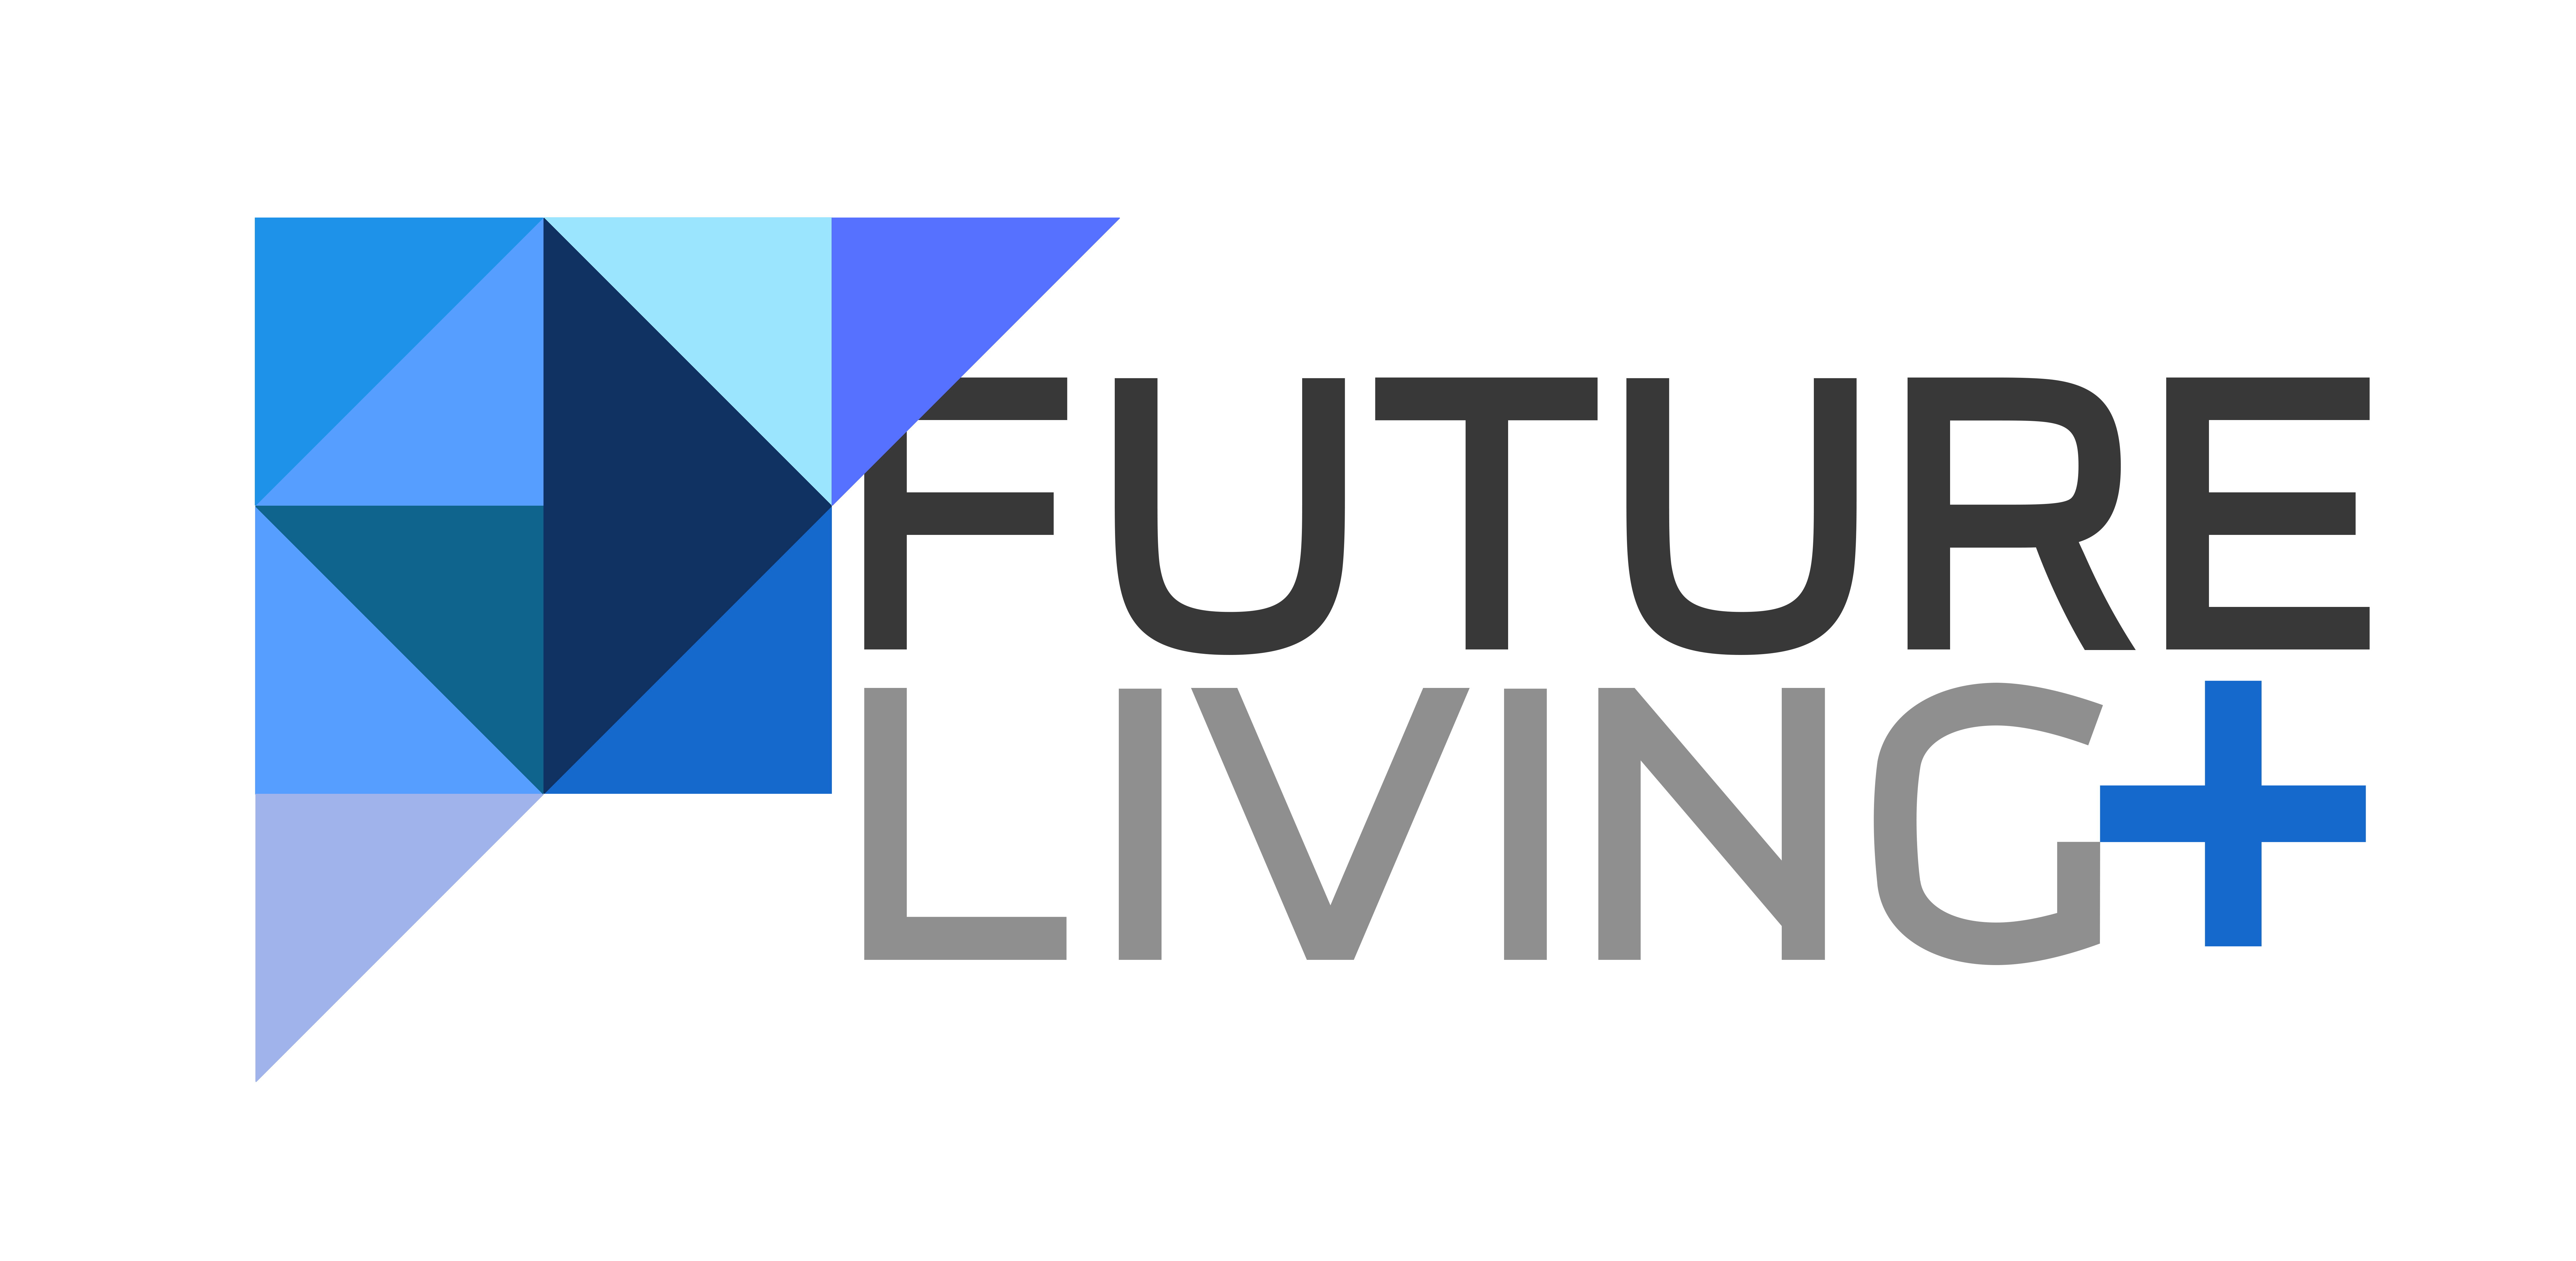 www.futurelivingplus.co.th